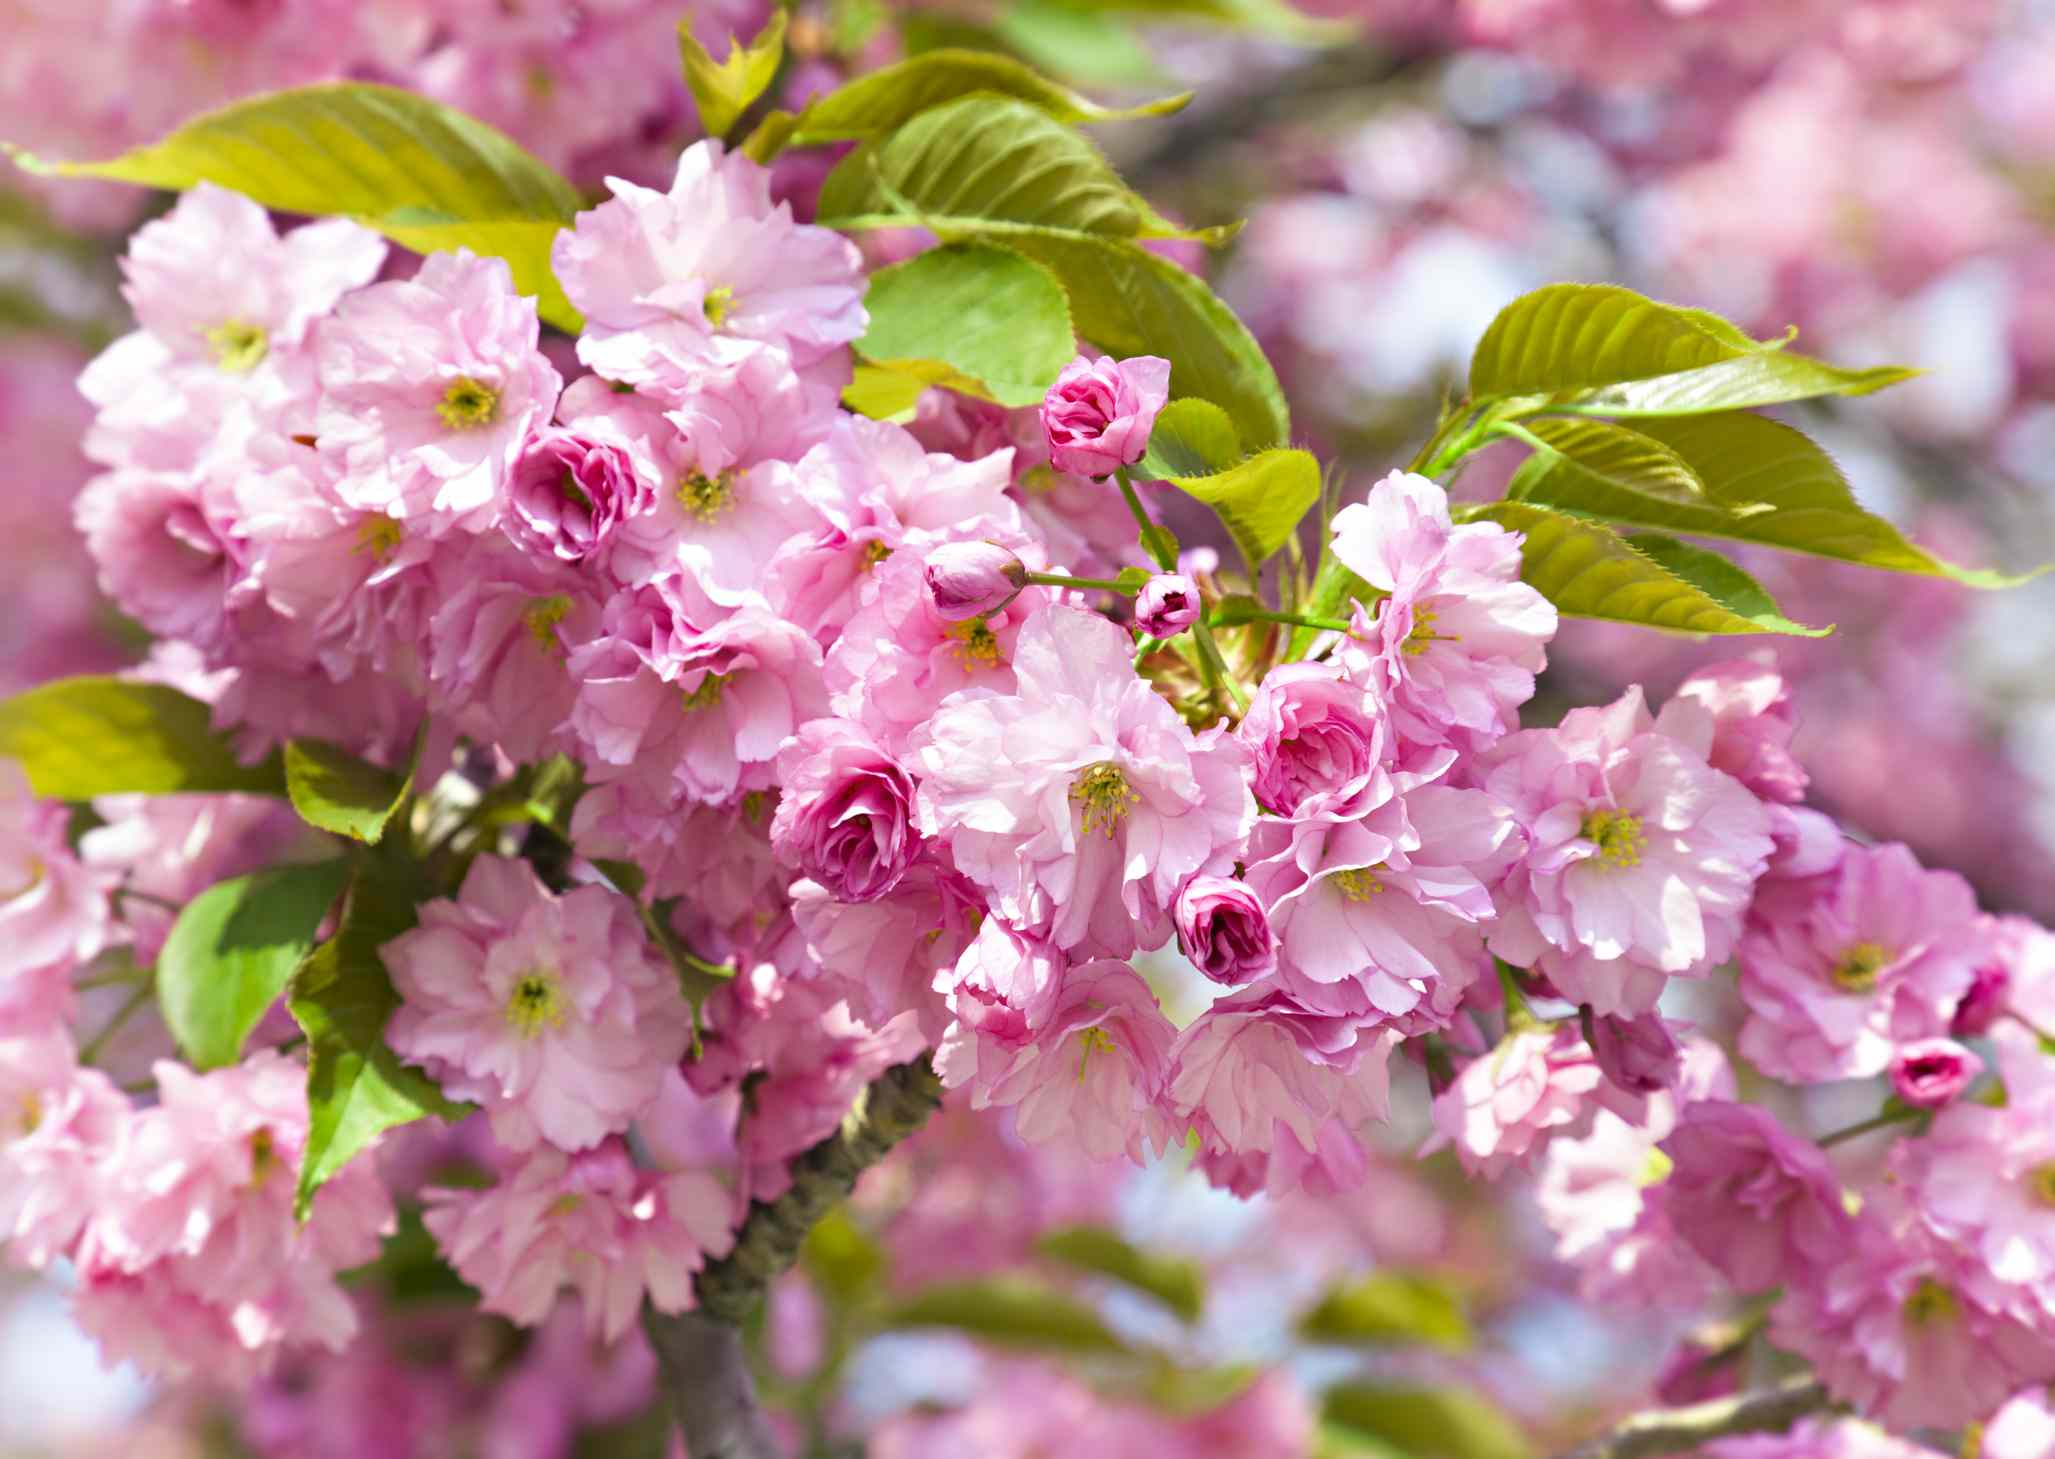 Crabapple tree with pink blooms.